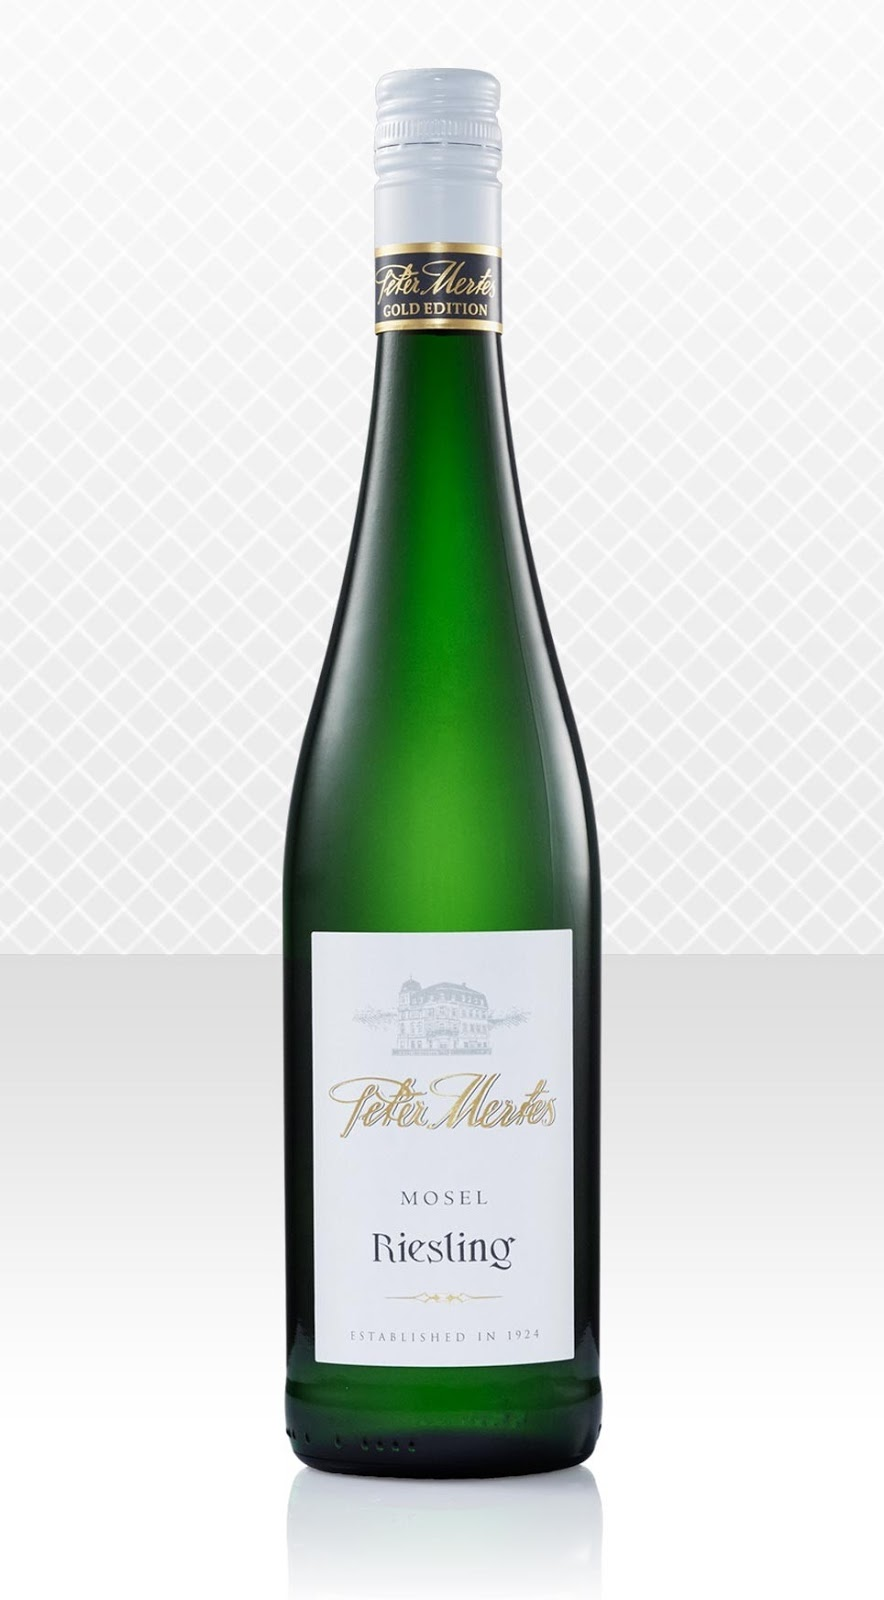 wwwmertesdeenglishproduktesortimentgoldeditionhtml wwwaldiliquorcomaupeter mertes gold edition mosel riesling 2014 It Tastes Like